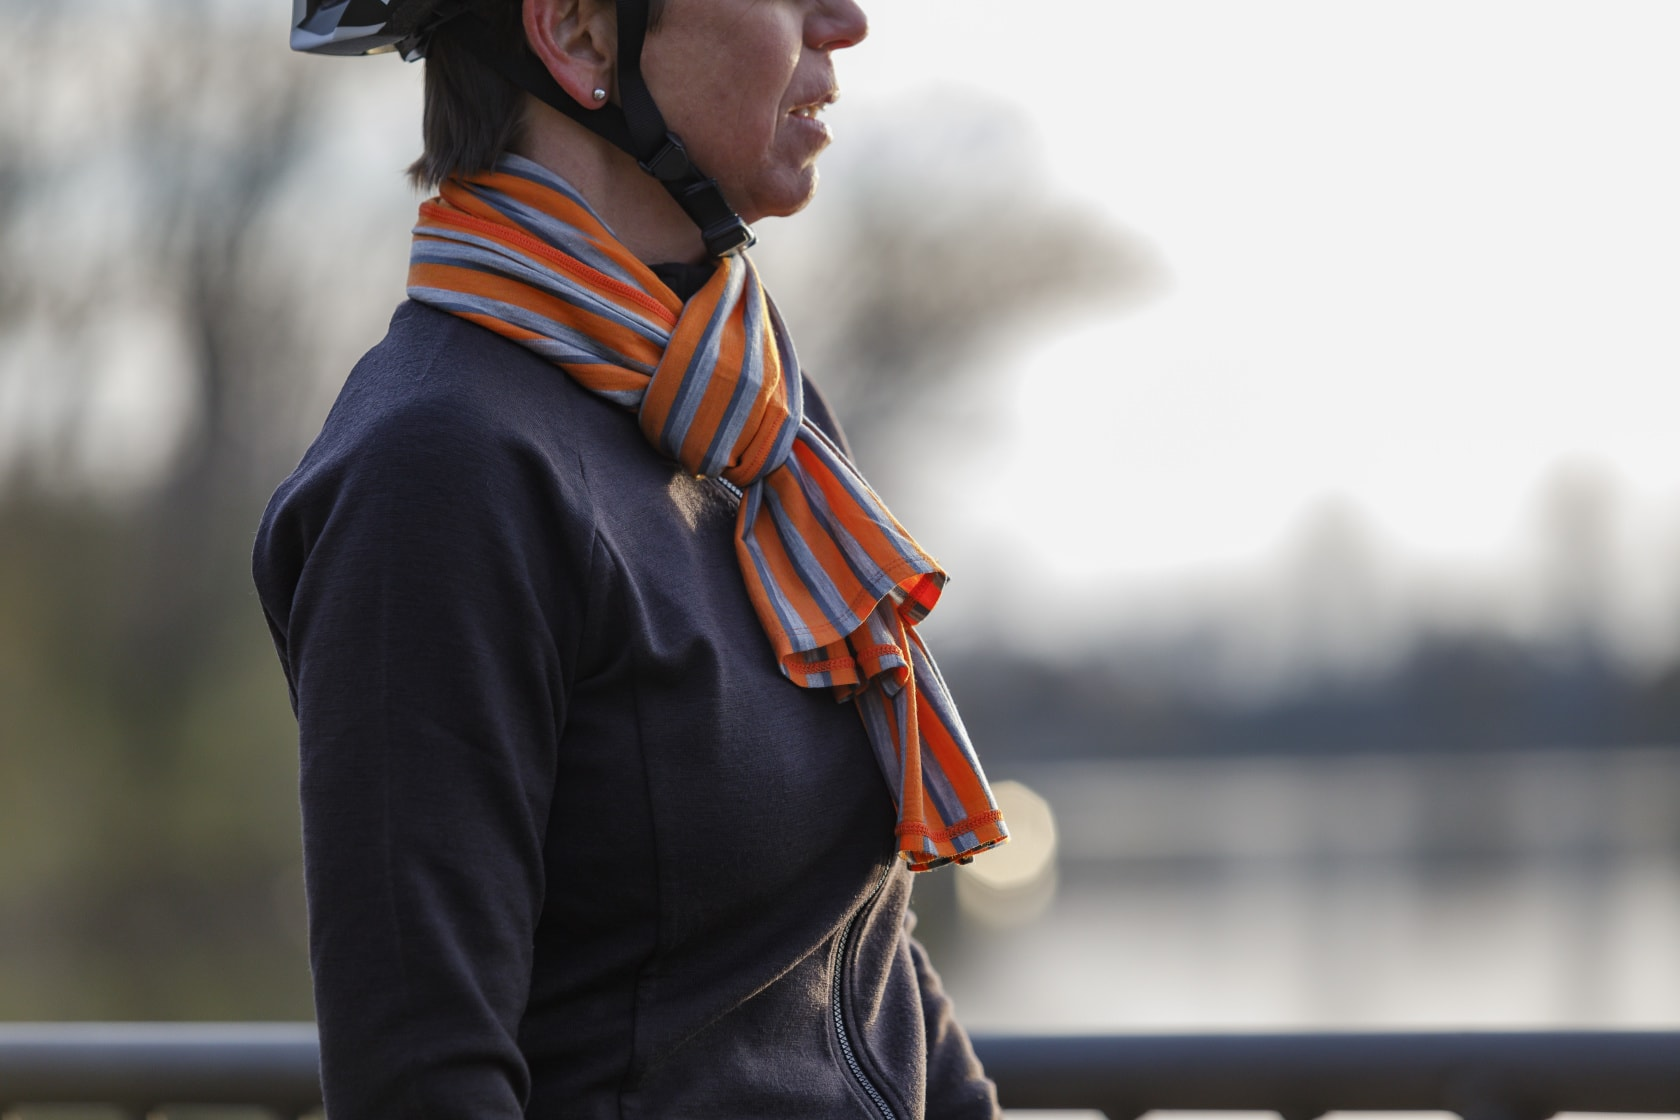 Right profile view of a person wearing a Surly Wool Scarf - Orange, Light Gray and blue parallel stripes